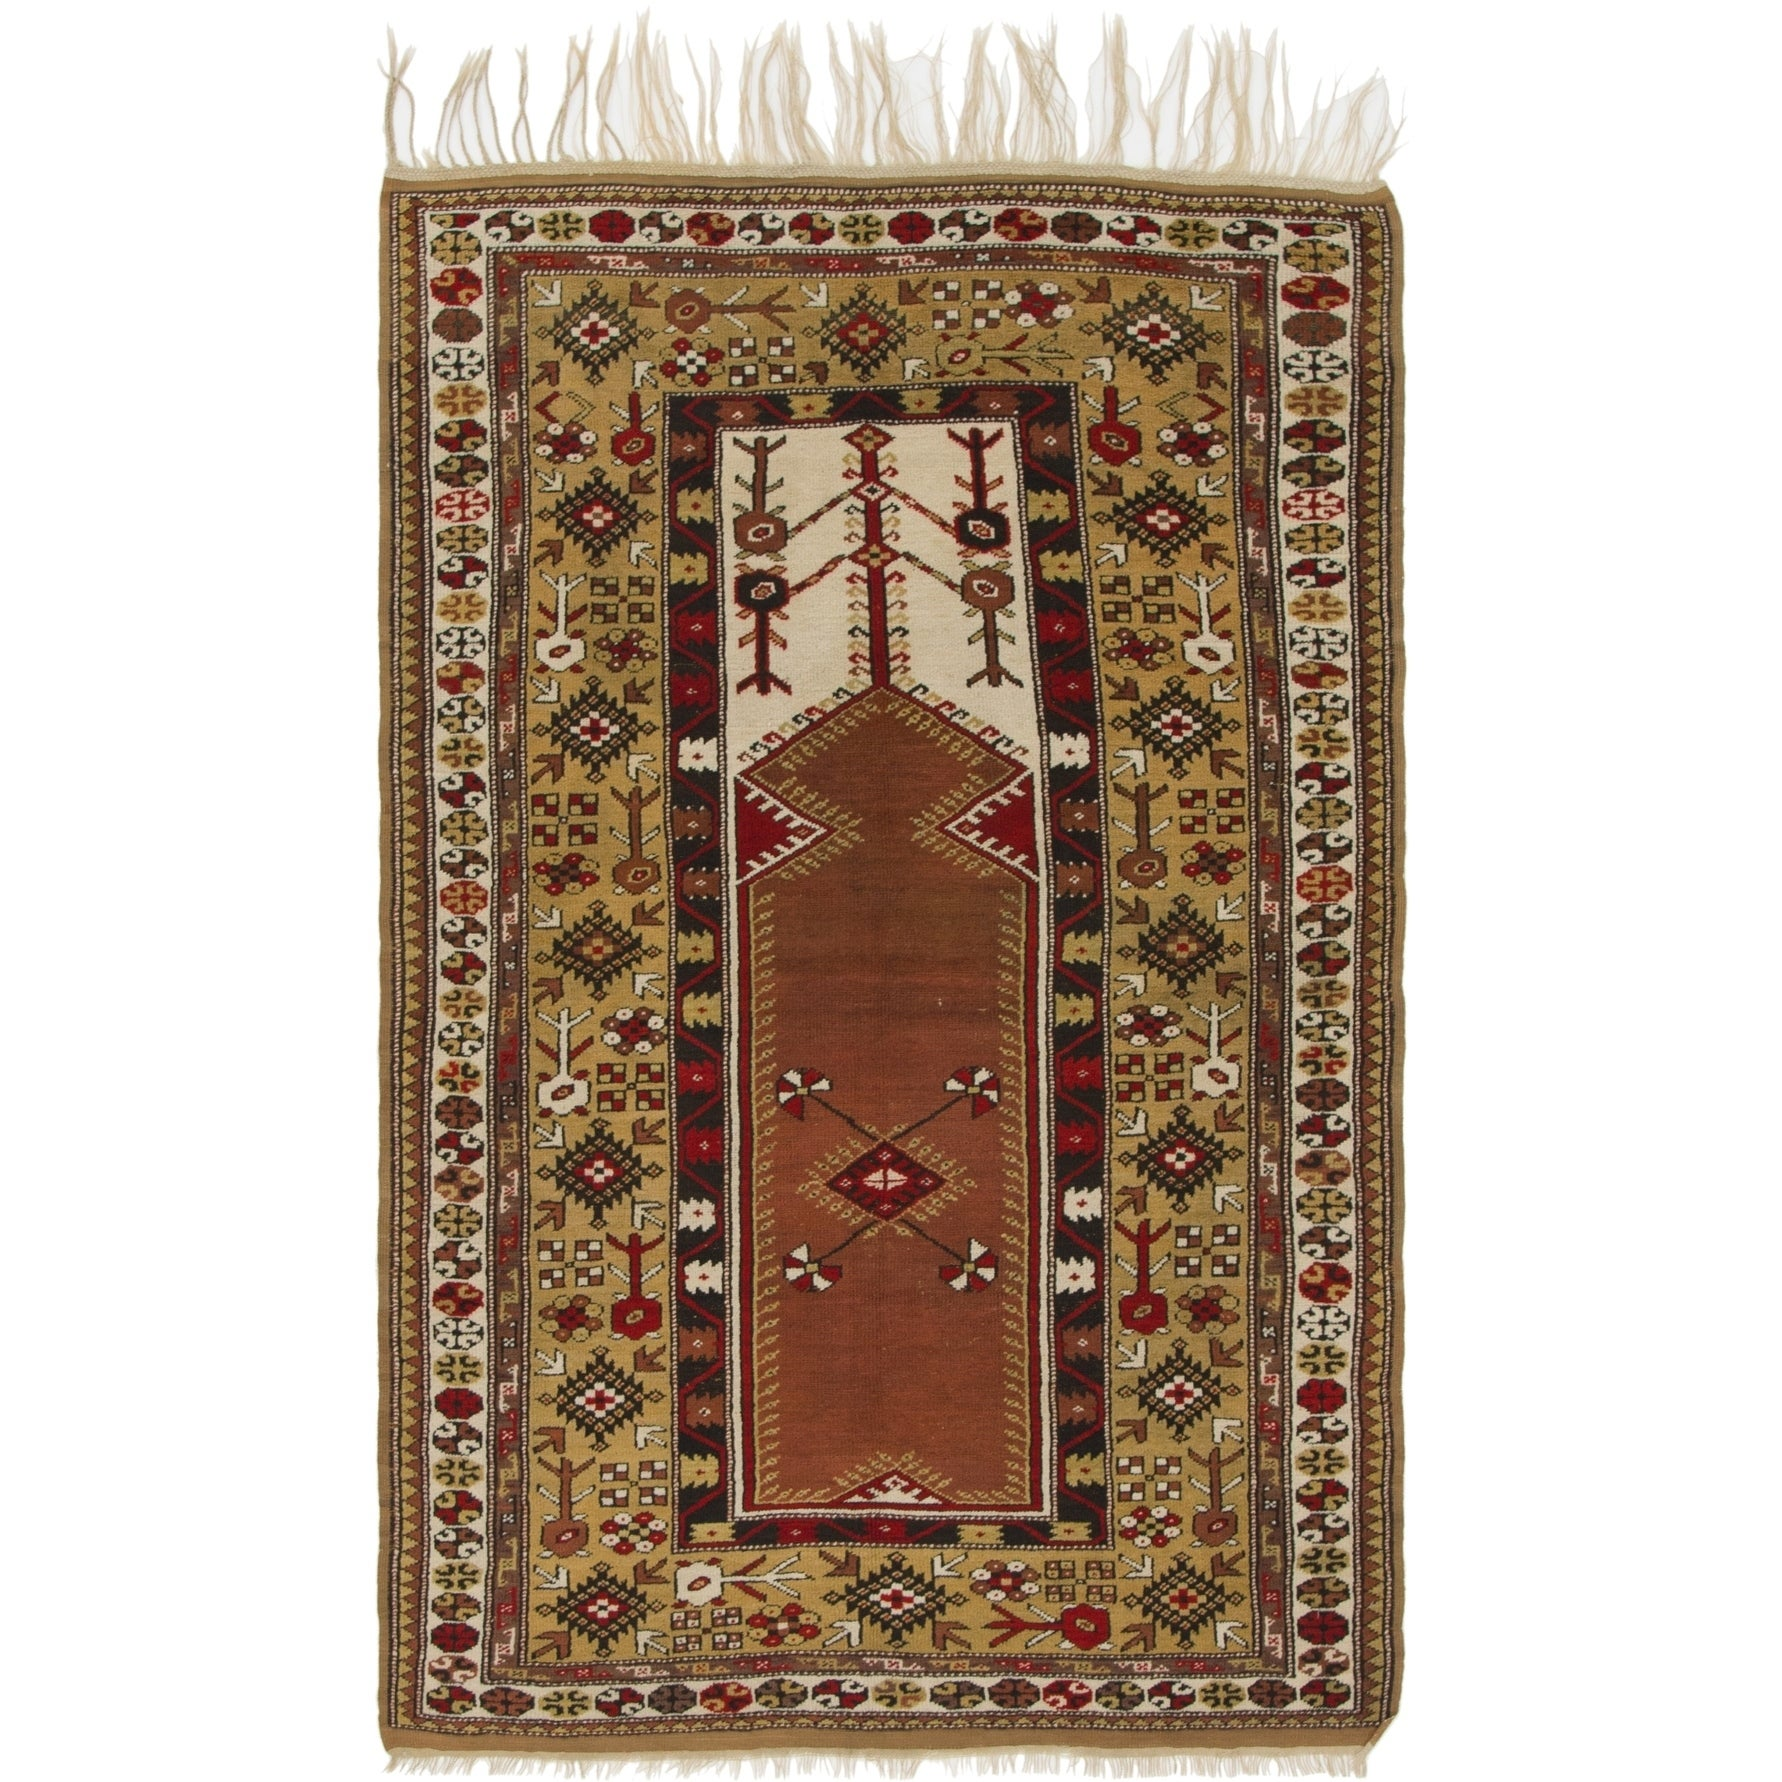 Hand Knotted Kars Wool Area Rug - 4 4 x 7 (Beige - 4 4 x 7)